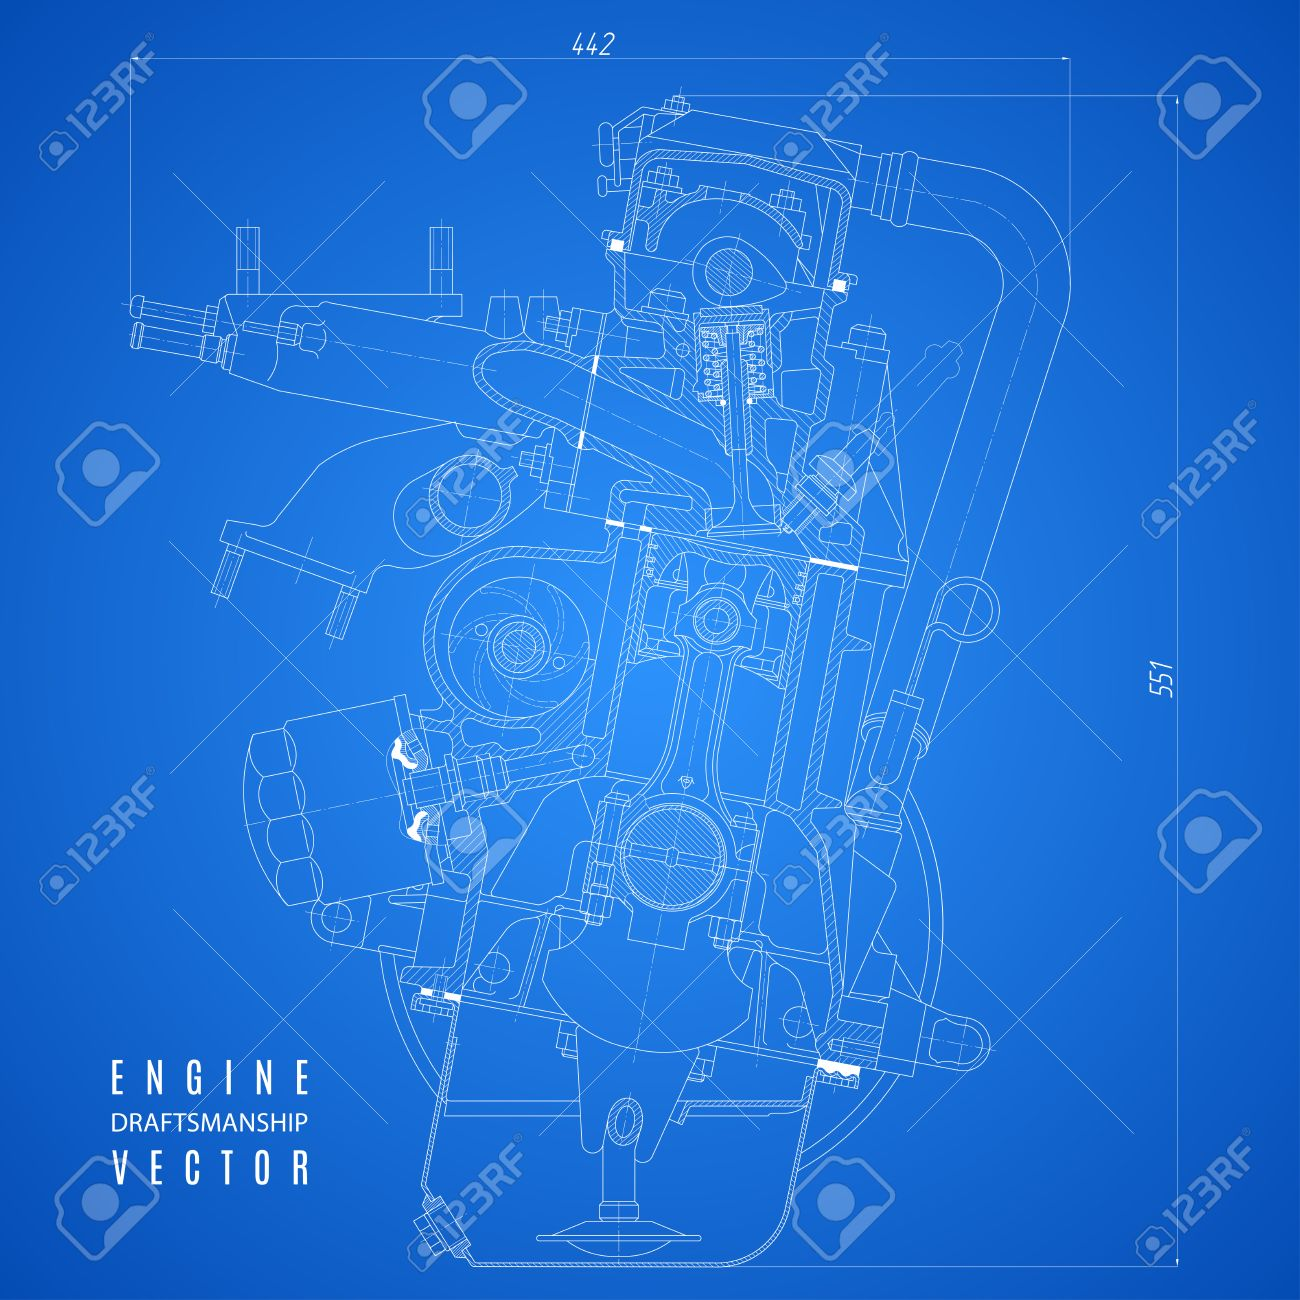 blueprint engine, project technical drawing on the blue background.  Stockfoto - 61564257